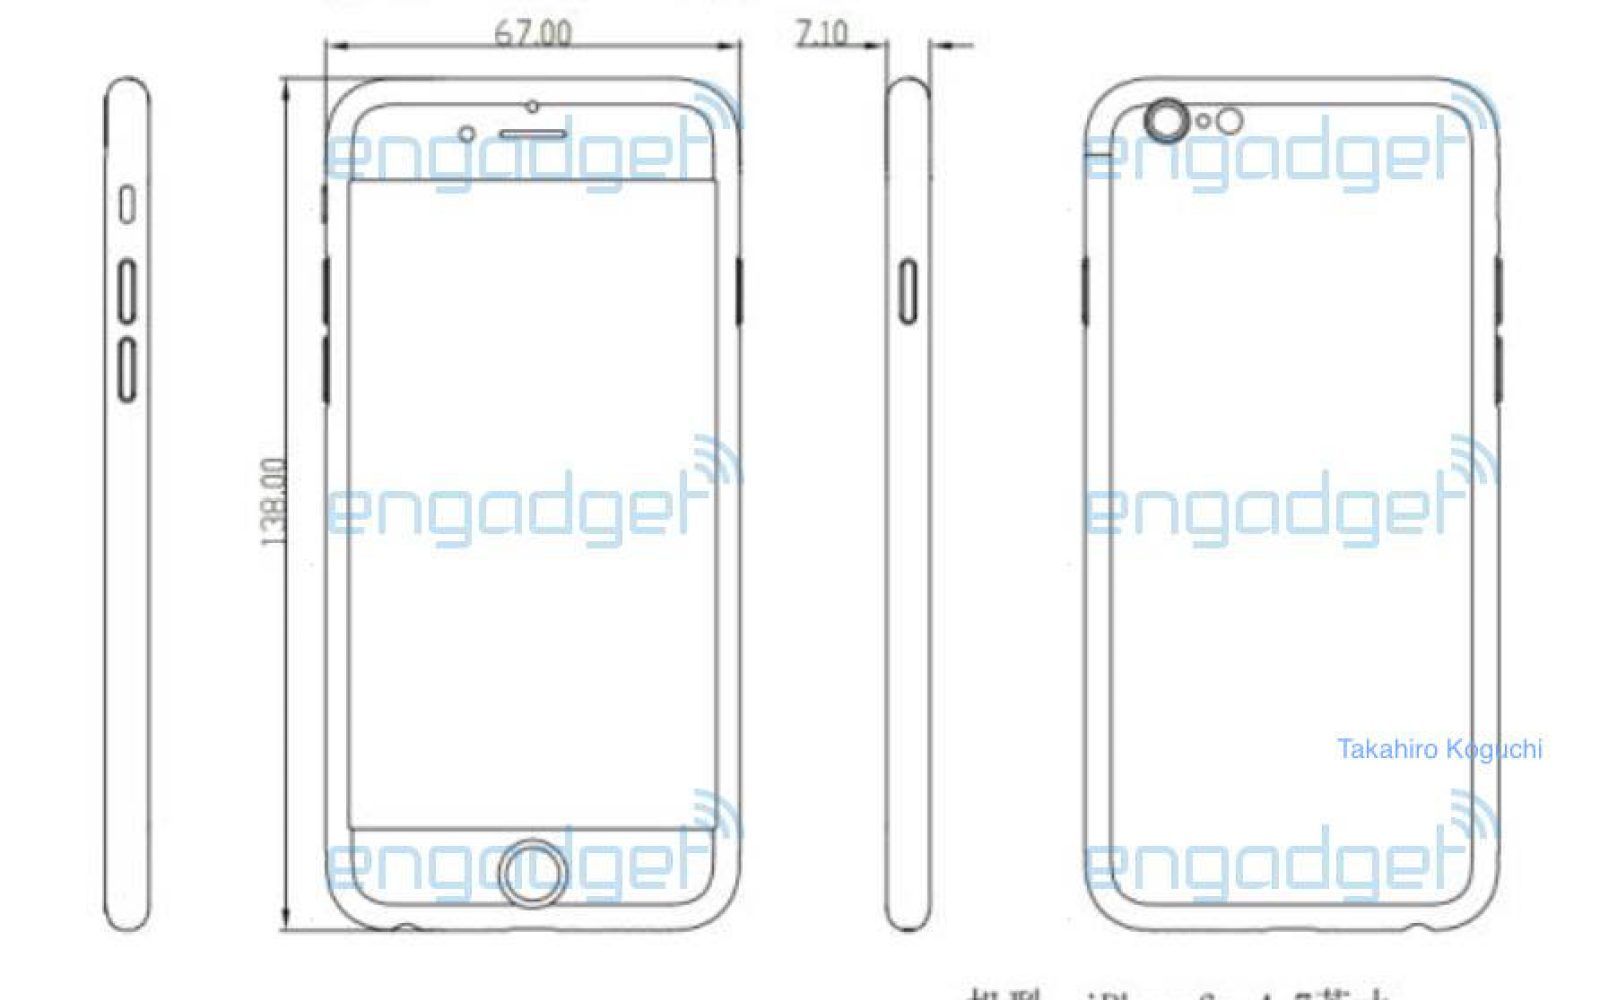 Claimed Iphone 6s Schematic Matches Our Report Of Minimal Exterior 3 Circuit Diagram Changes